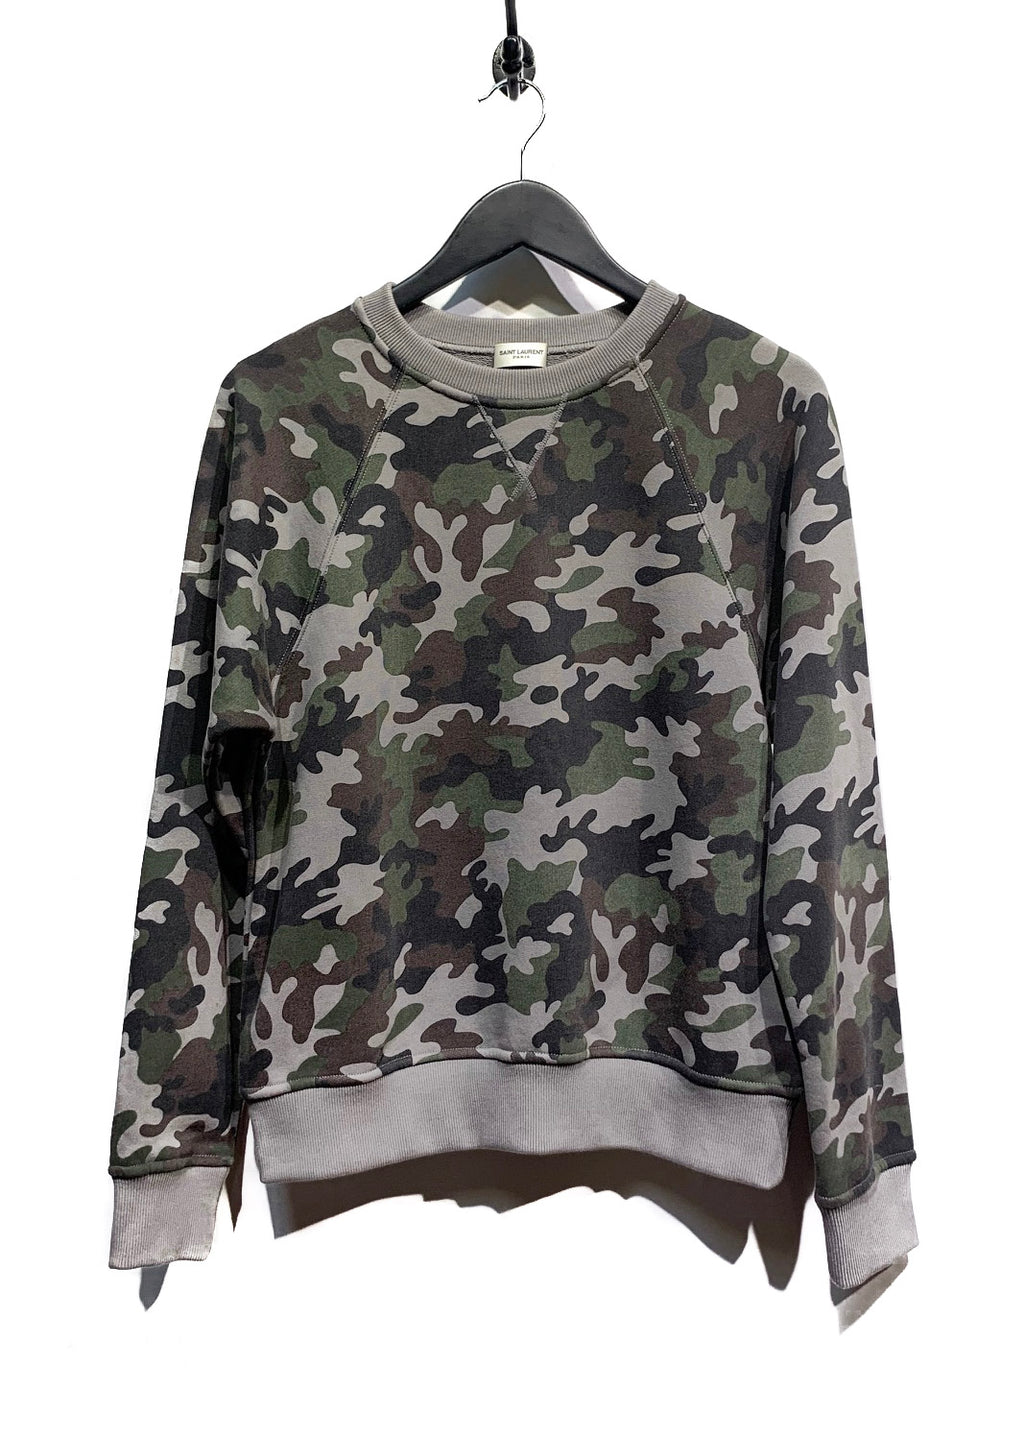 Saint Laurent Green Camouflage Sweatshirt